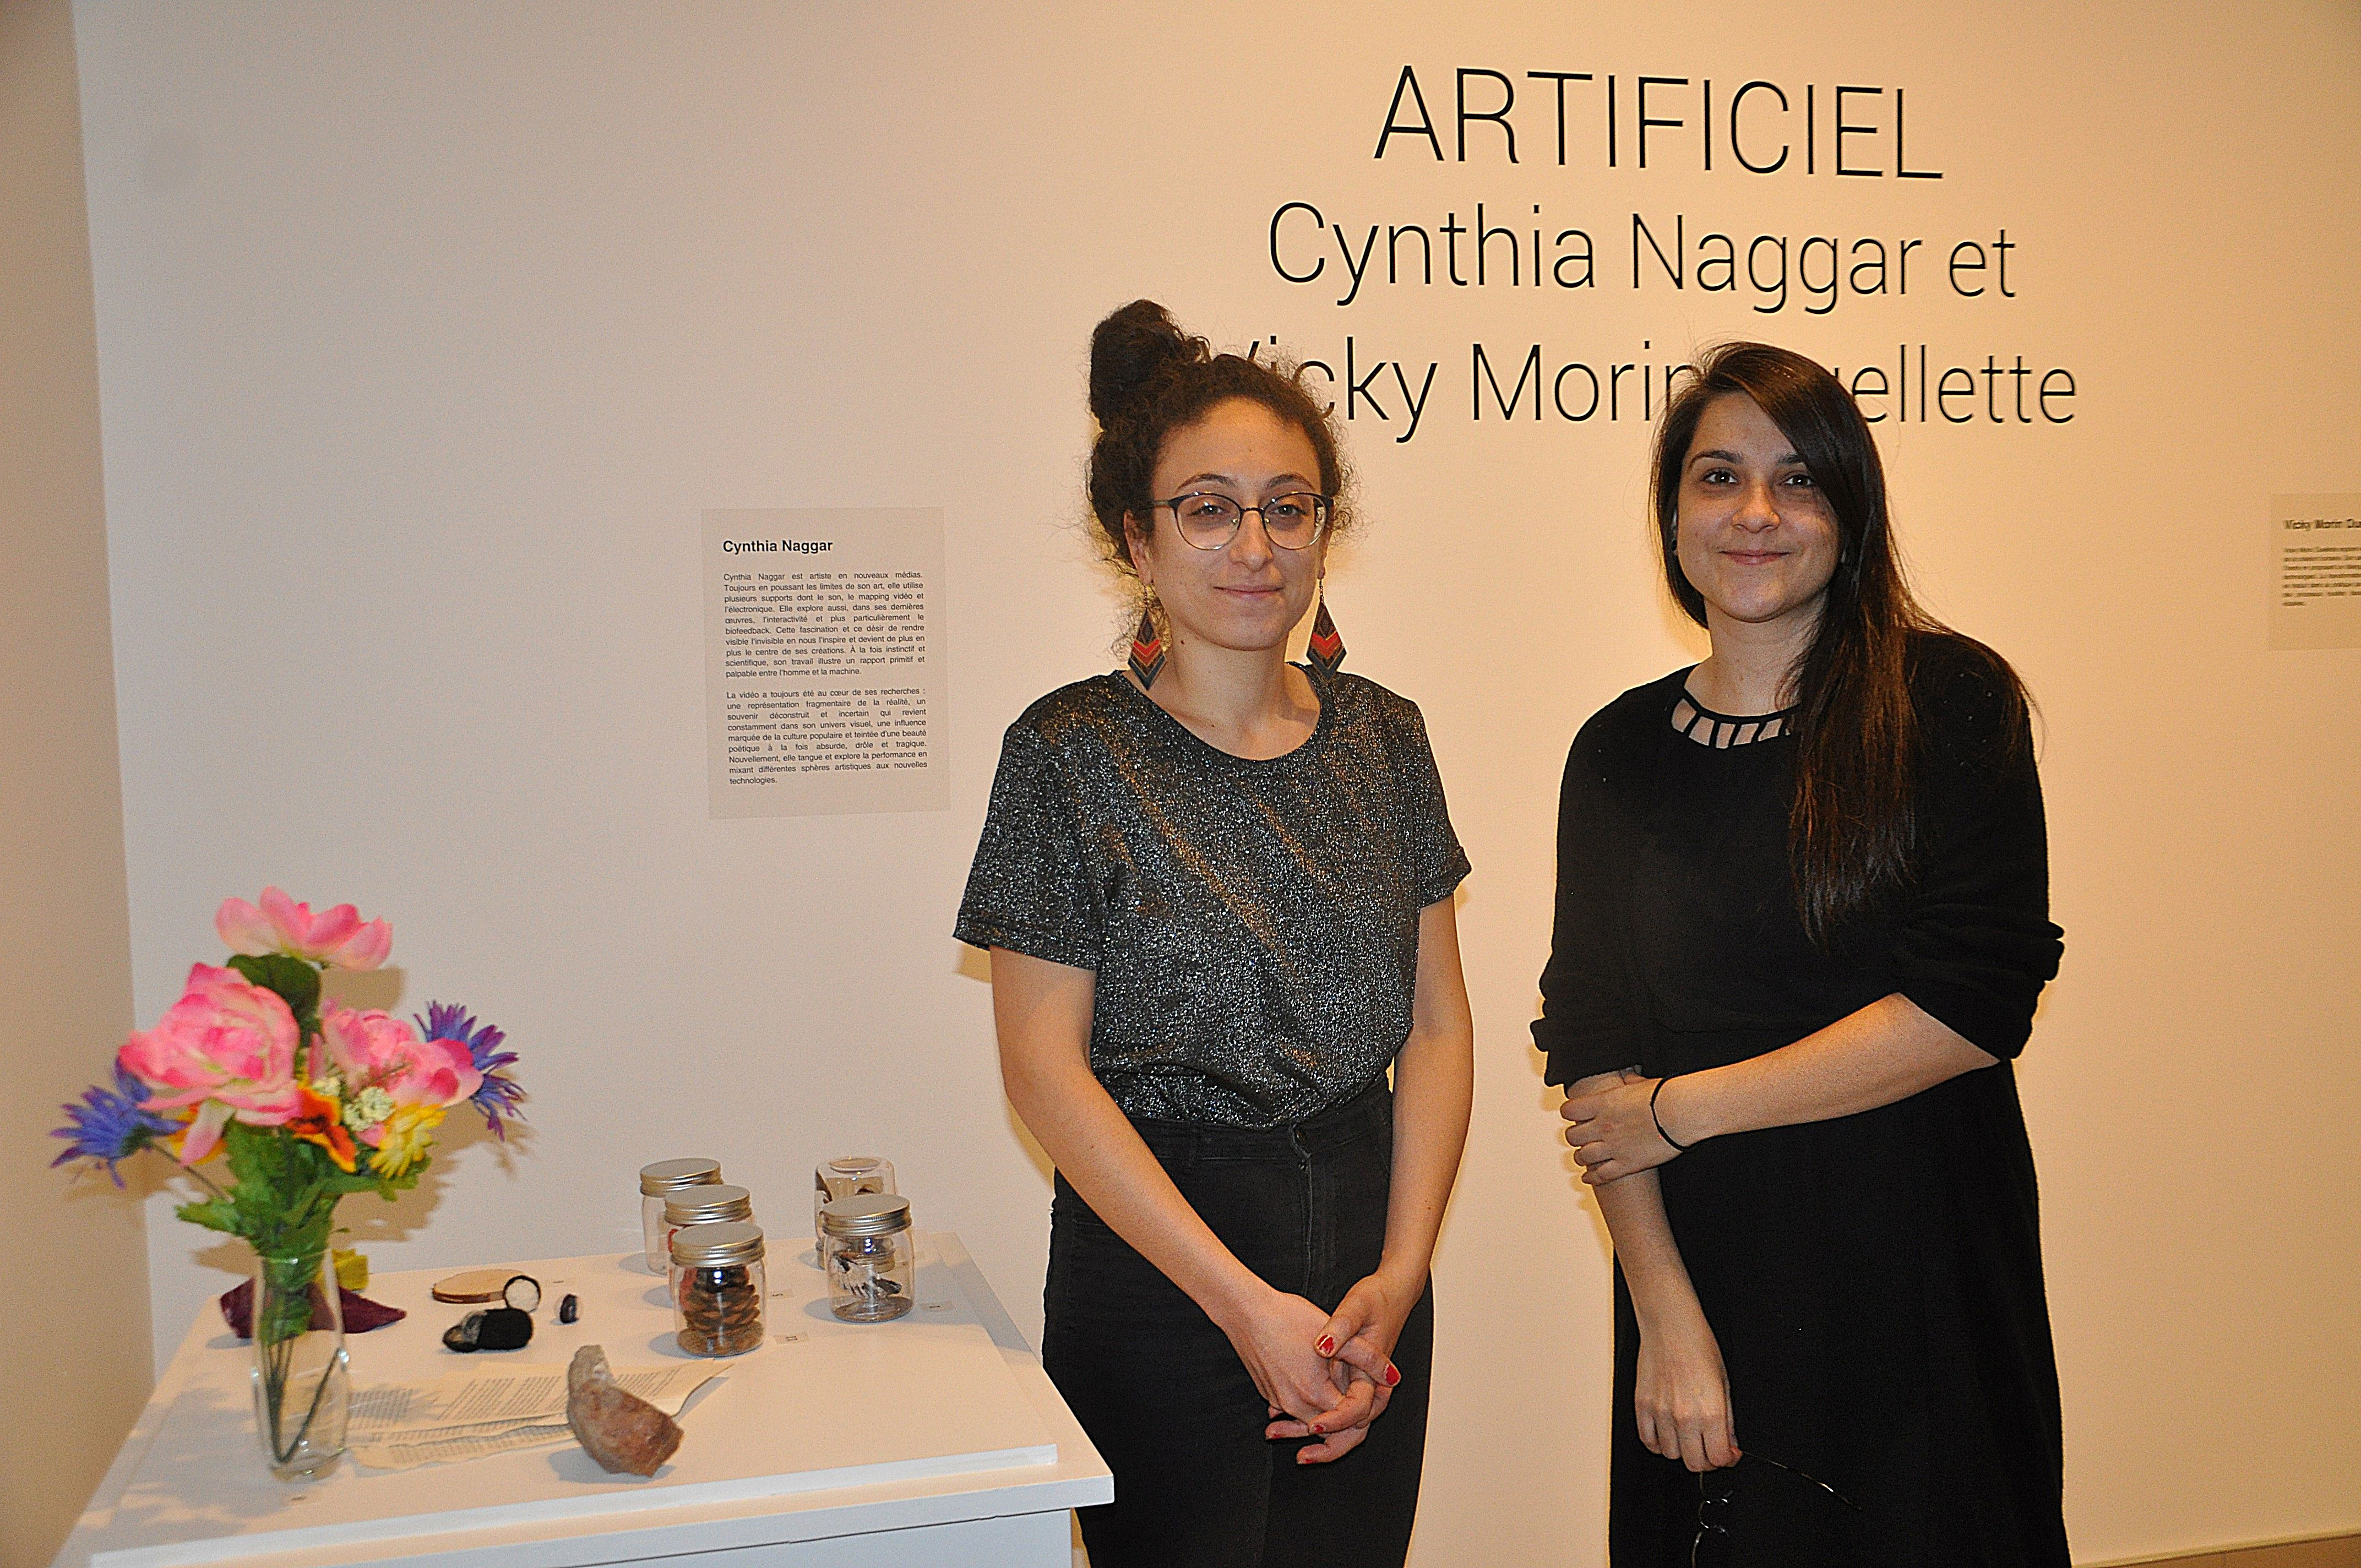 Cynthia Naggar et Vicky Morin Ouellette